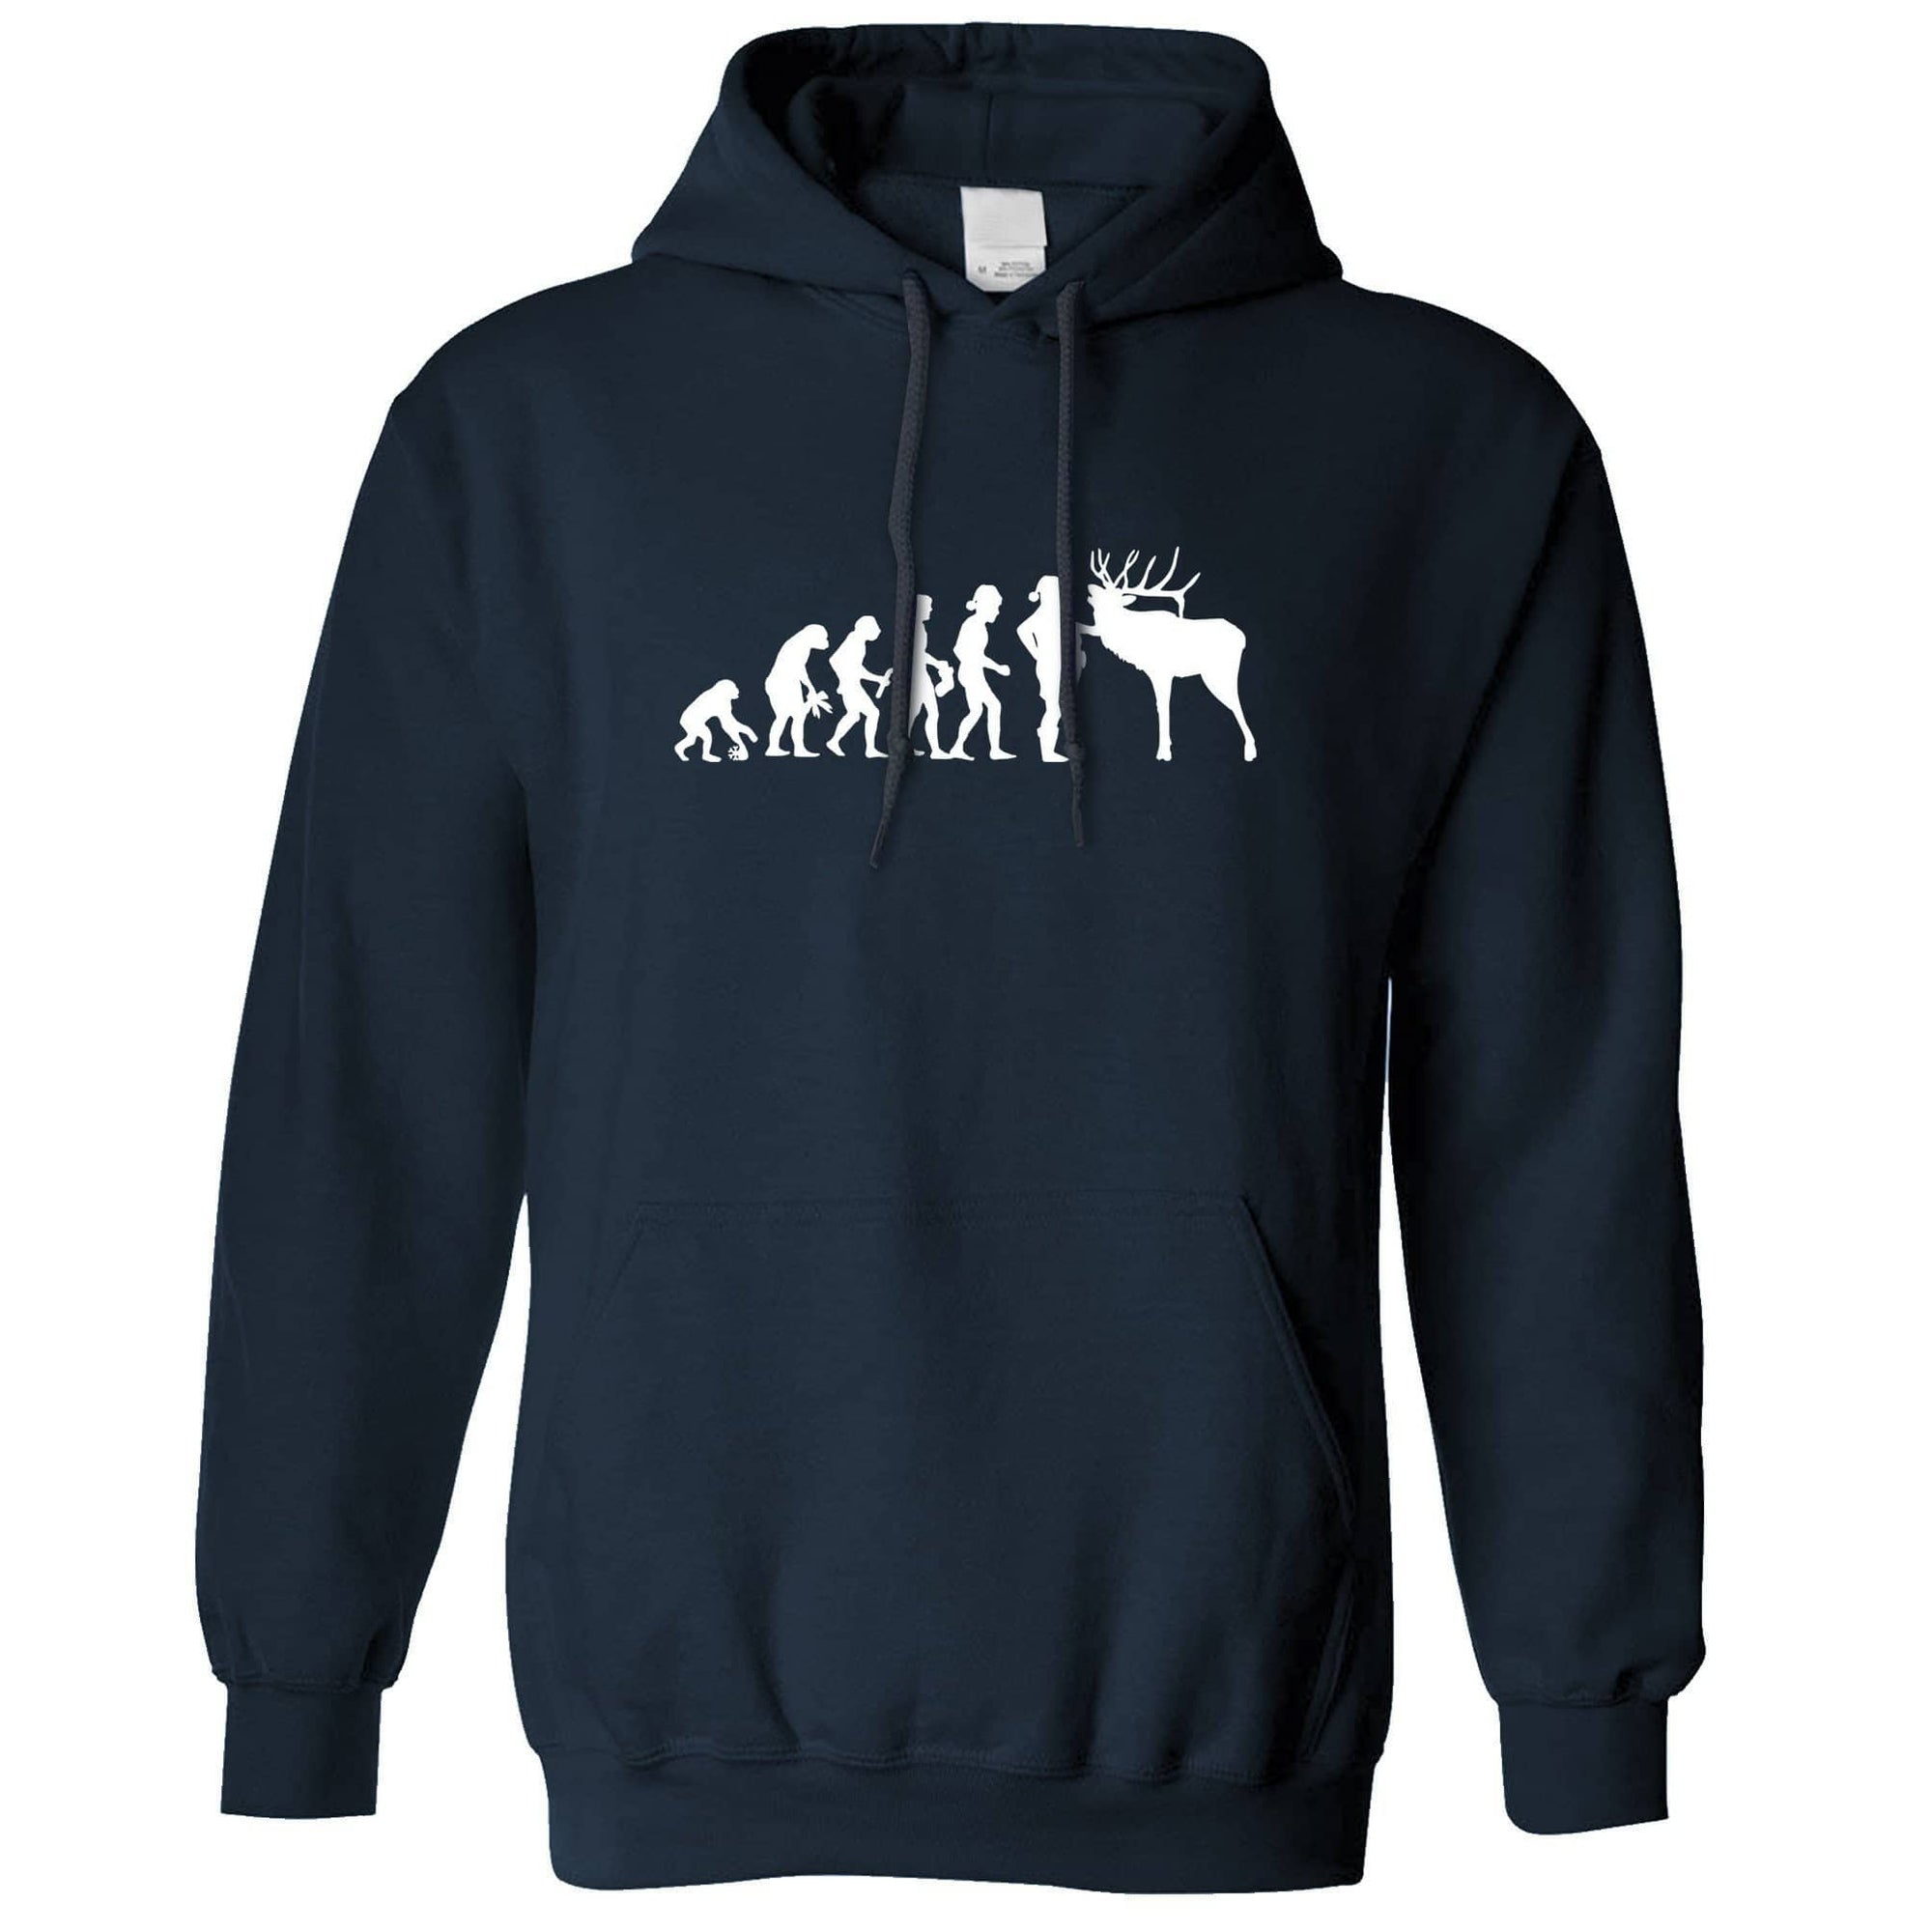 Novelty Christmas Hoodie Evolution Of Xmas Holiday Hooded Jumper